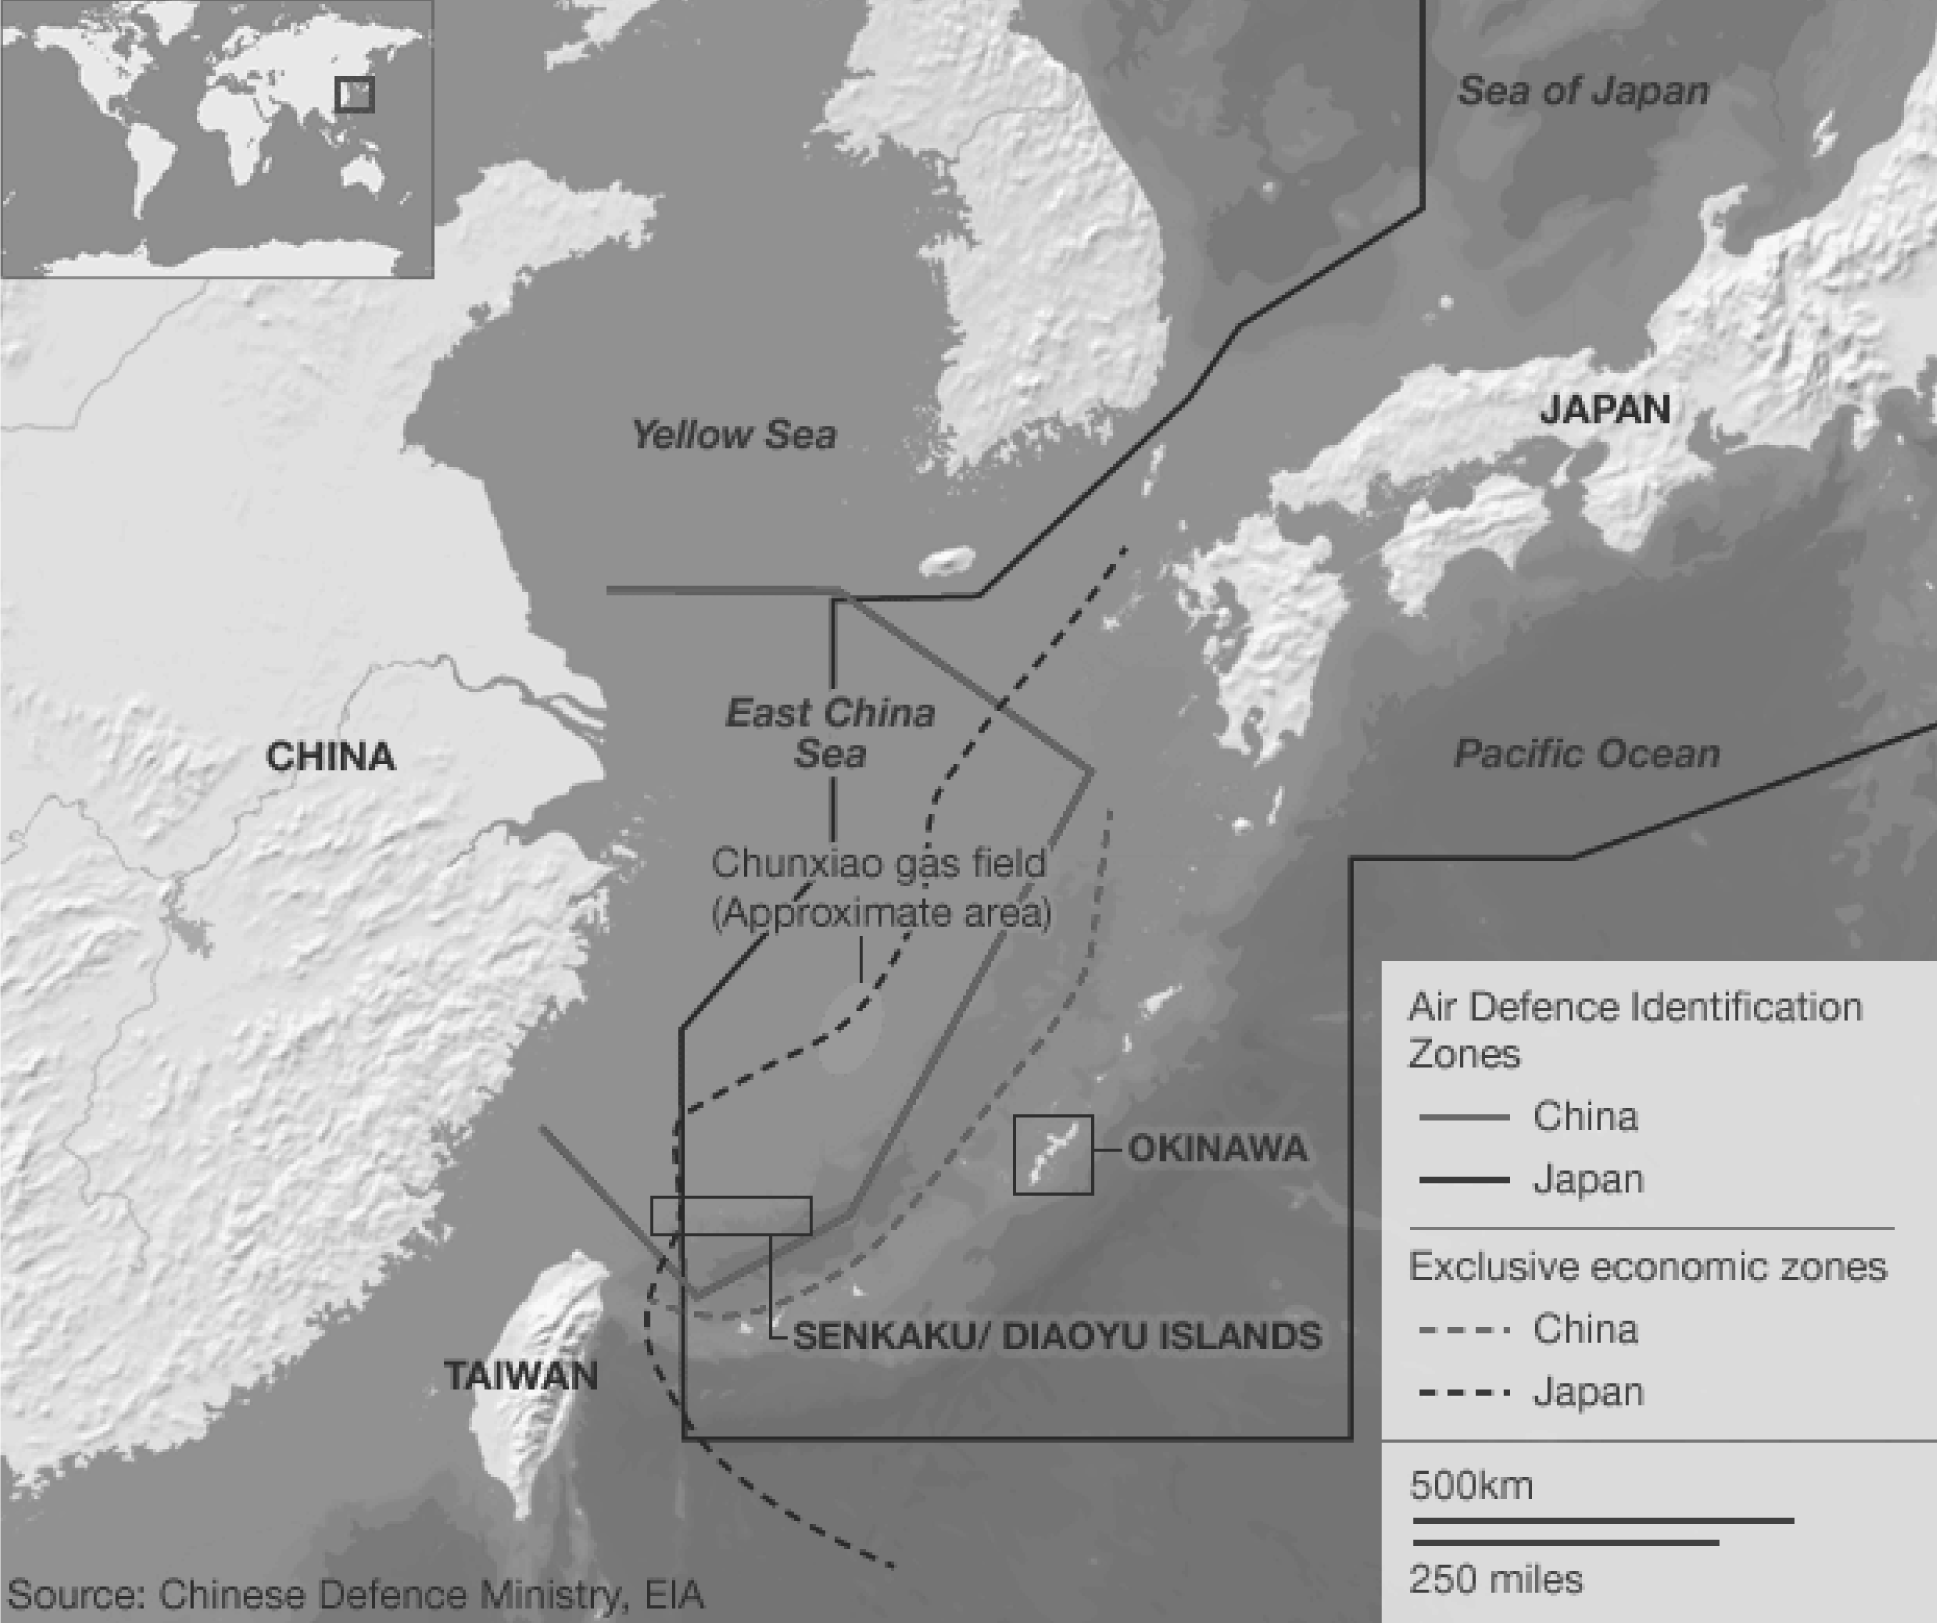 Map of territorial claims in the East China Sea